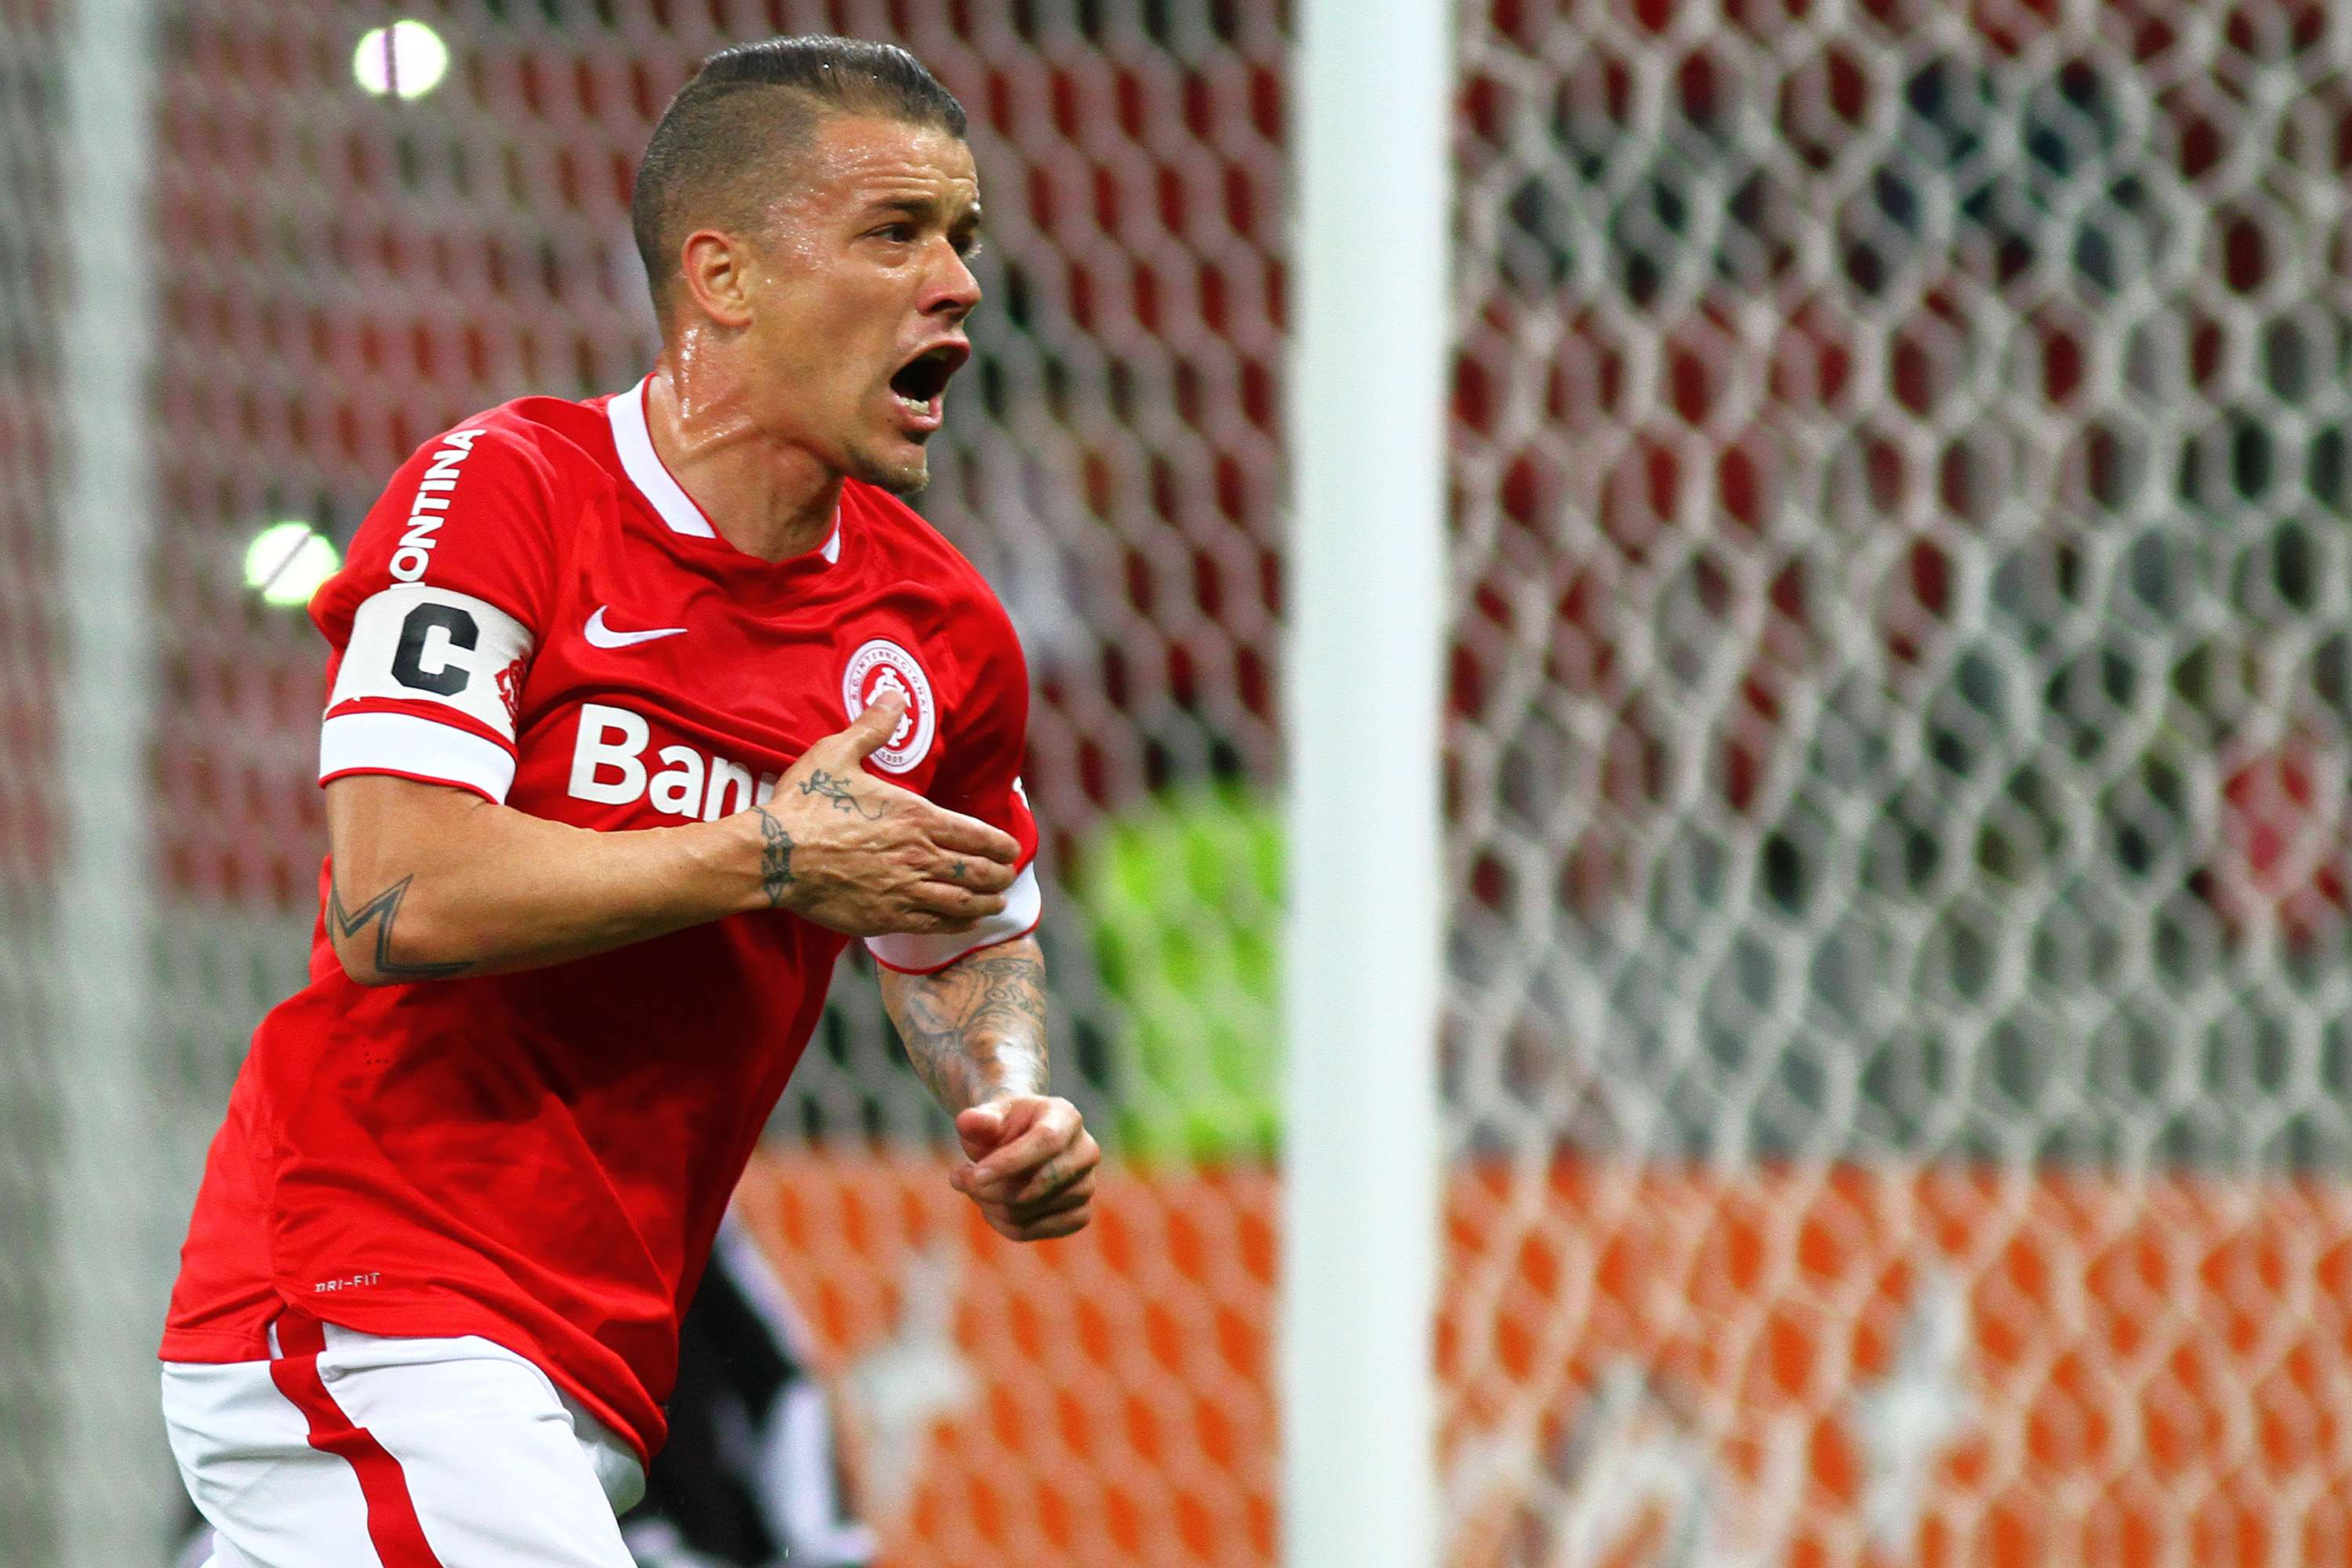 D'Alessandro comemora primeiro gol do Internacional Foto: Lucas Uebel/Getty Images